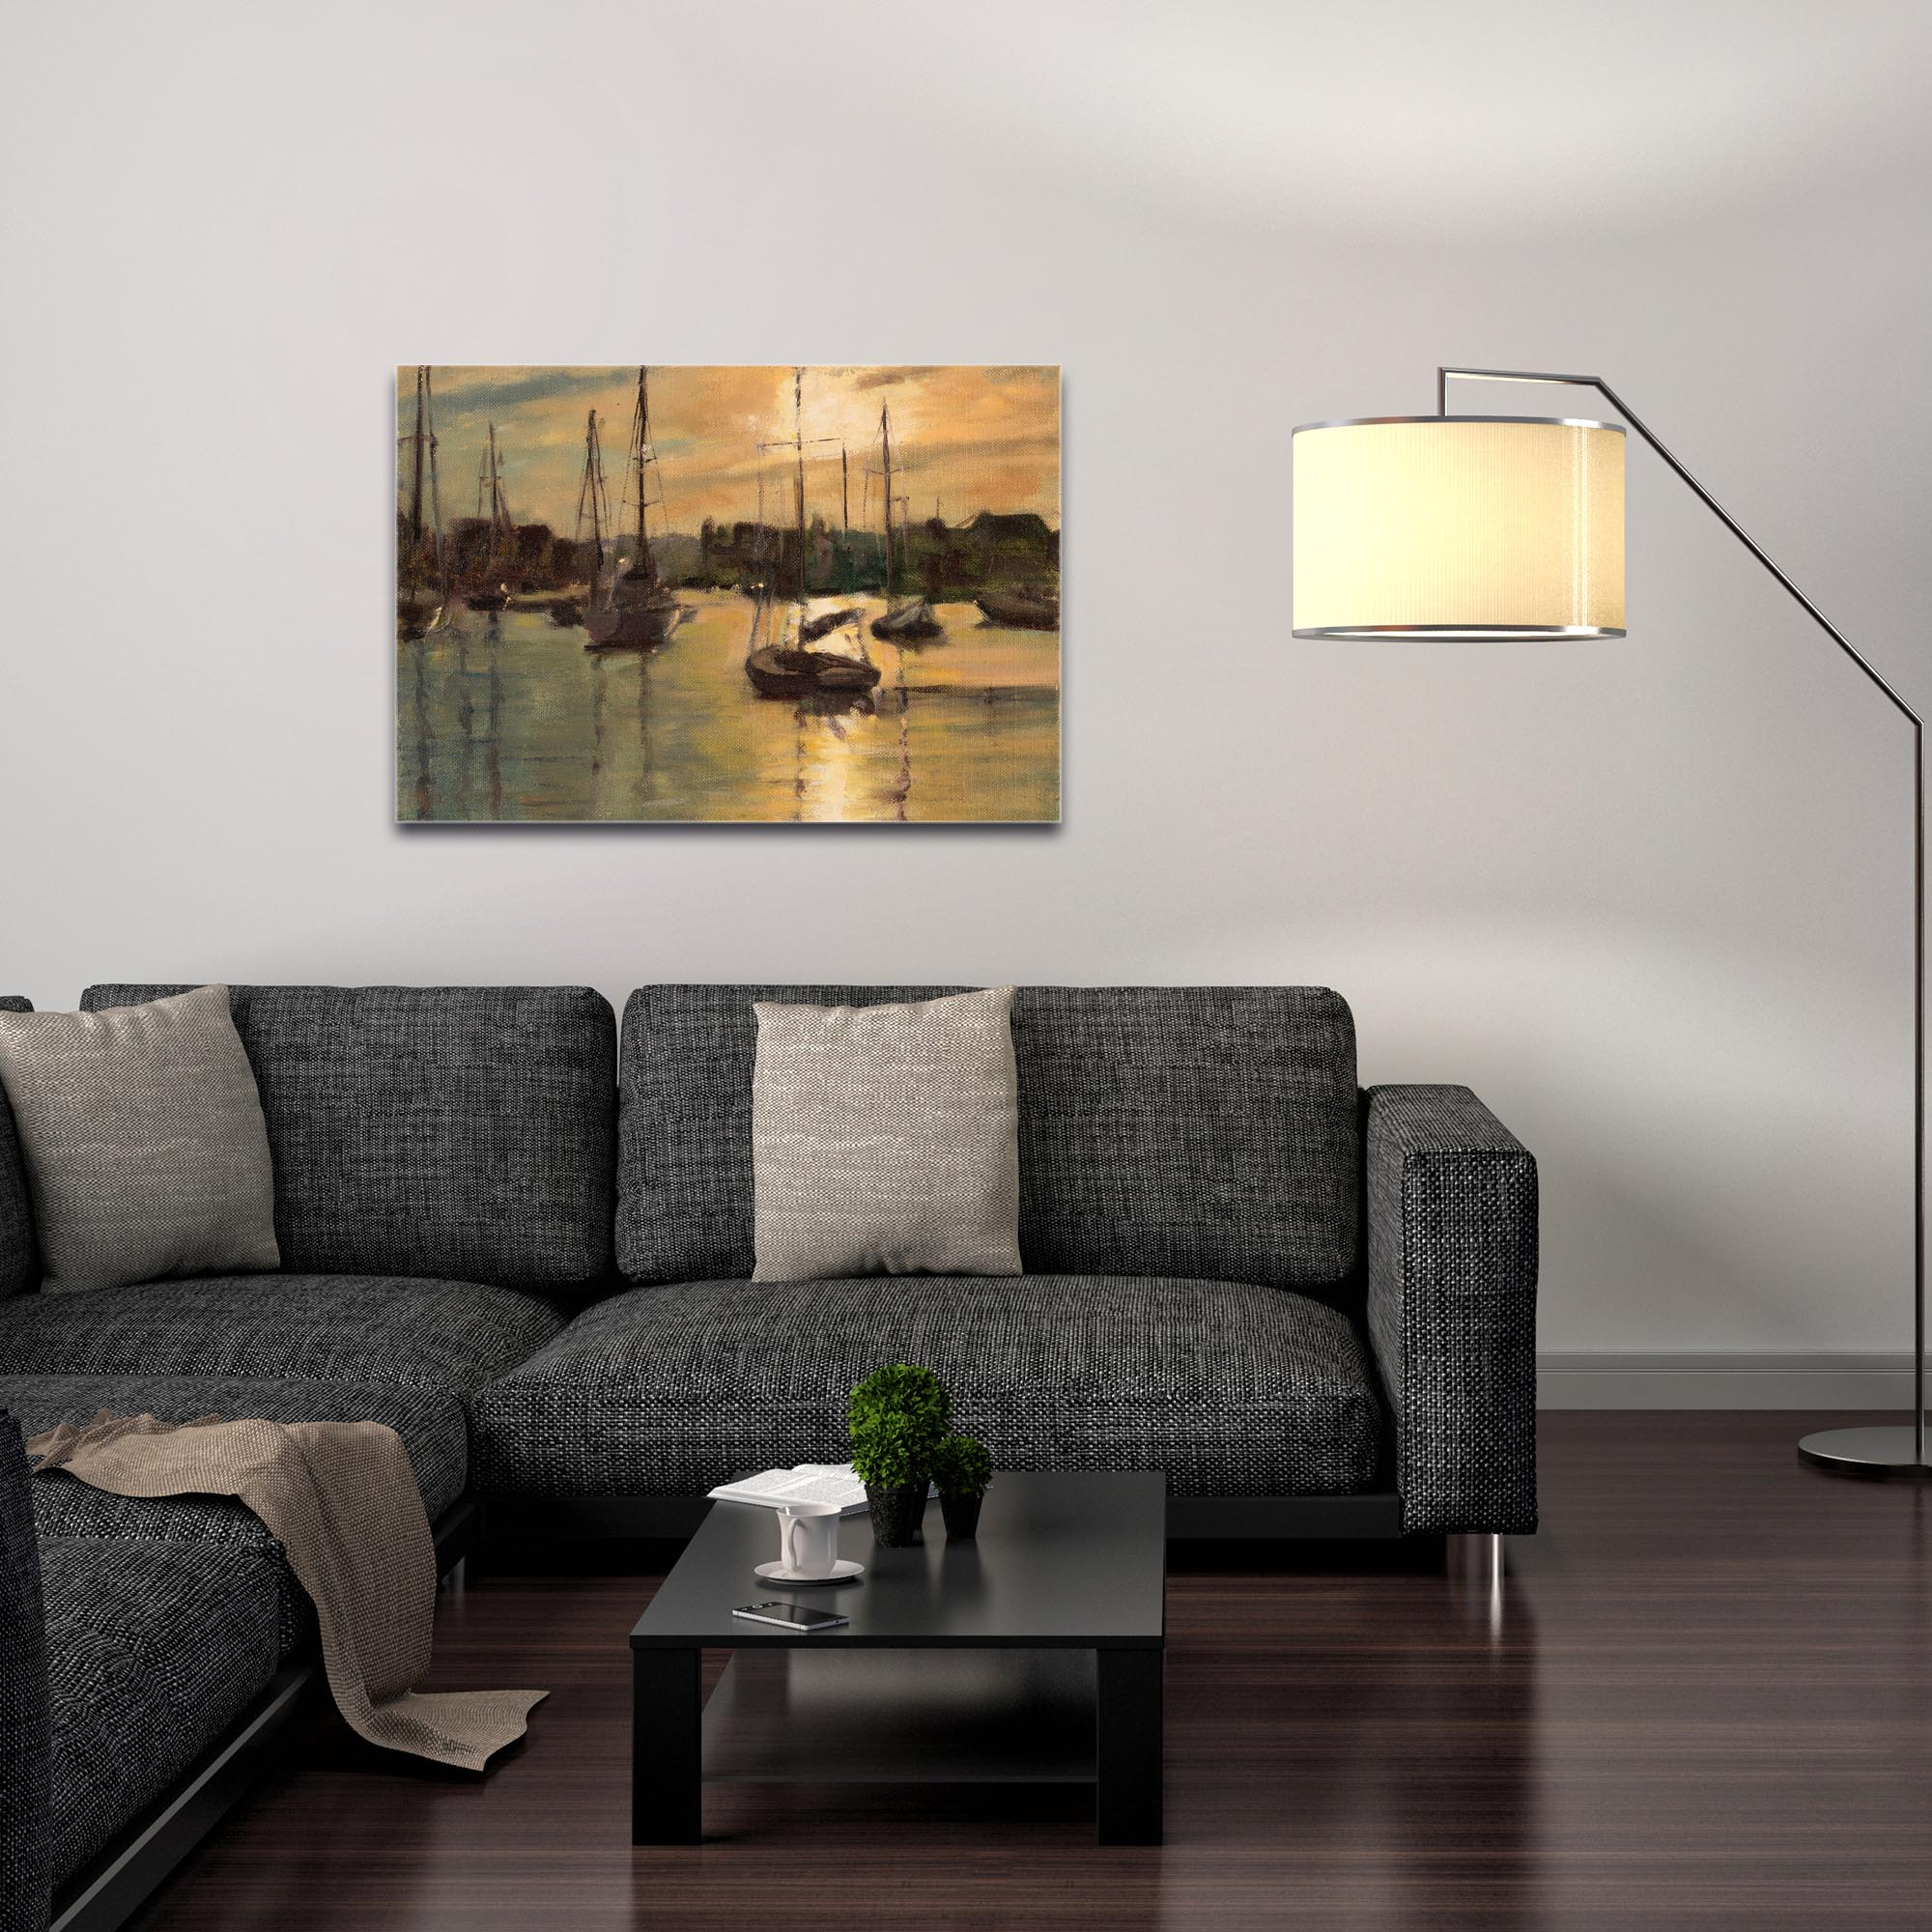 Coastal Wall Art 'Harbor 3' - Boats Decor on Metal or Plexiglass - Image 3